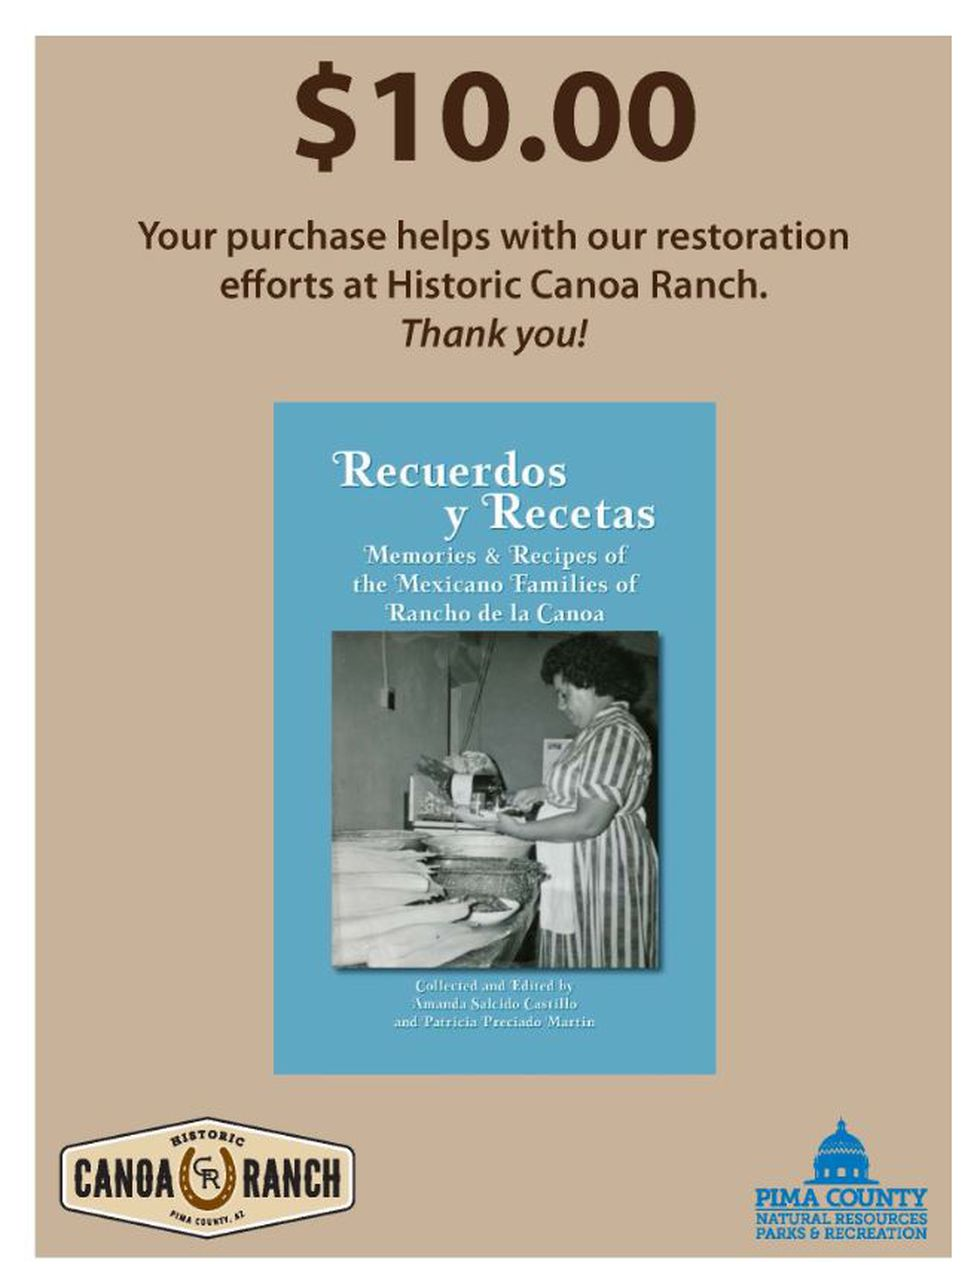 Canoa Ranch cookbook project (Source: Pima County Natural Resources, Parks and Recreation)